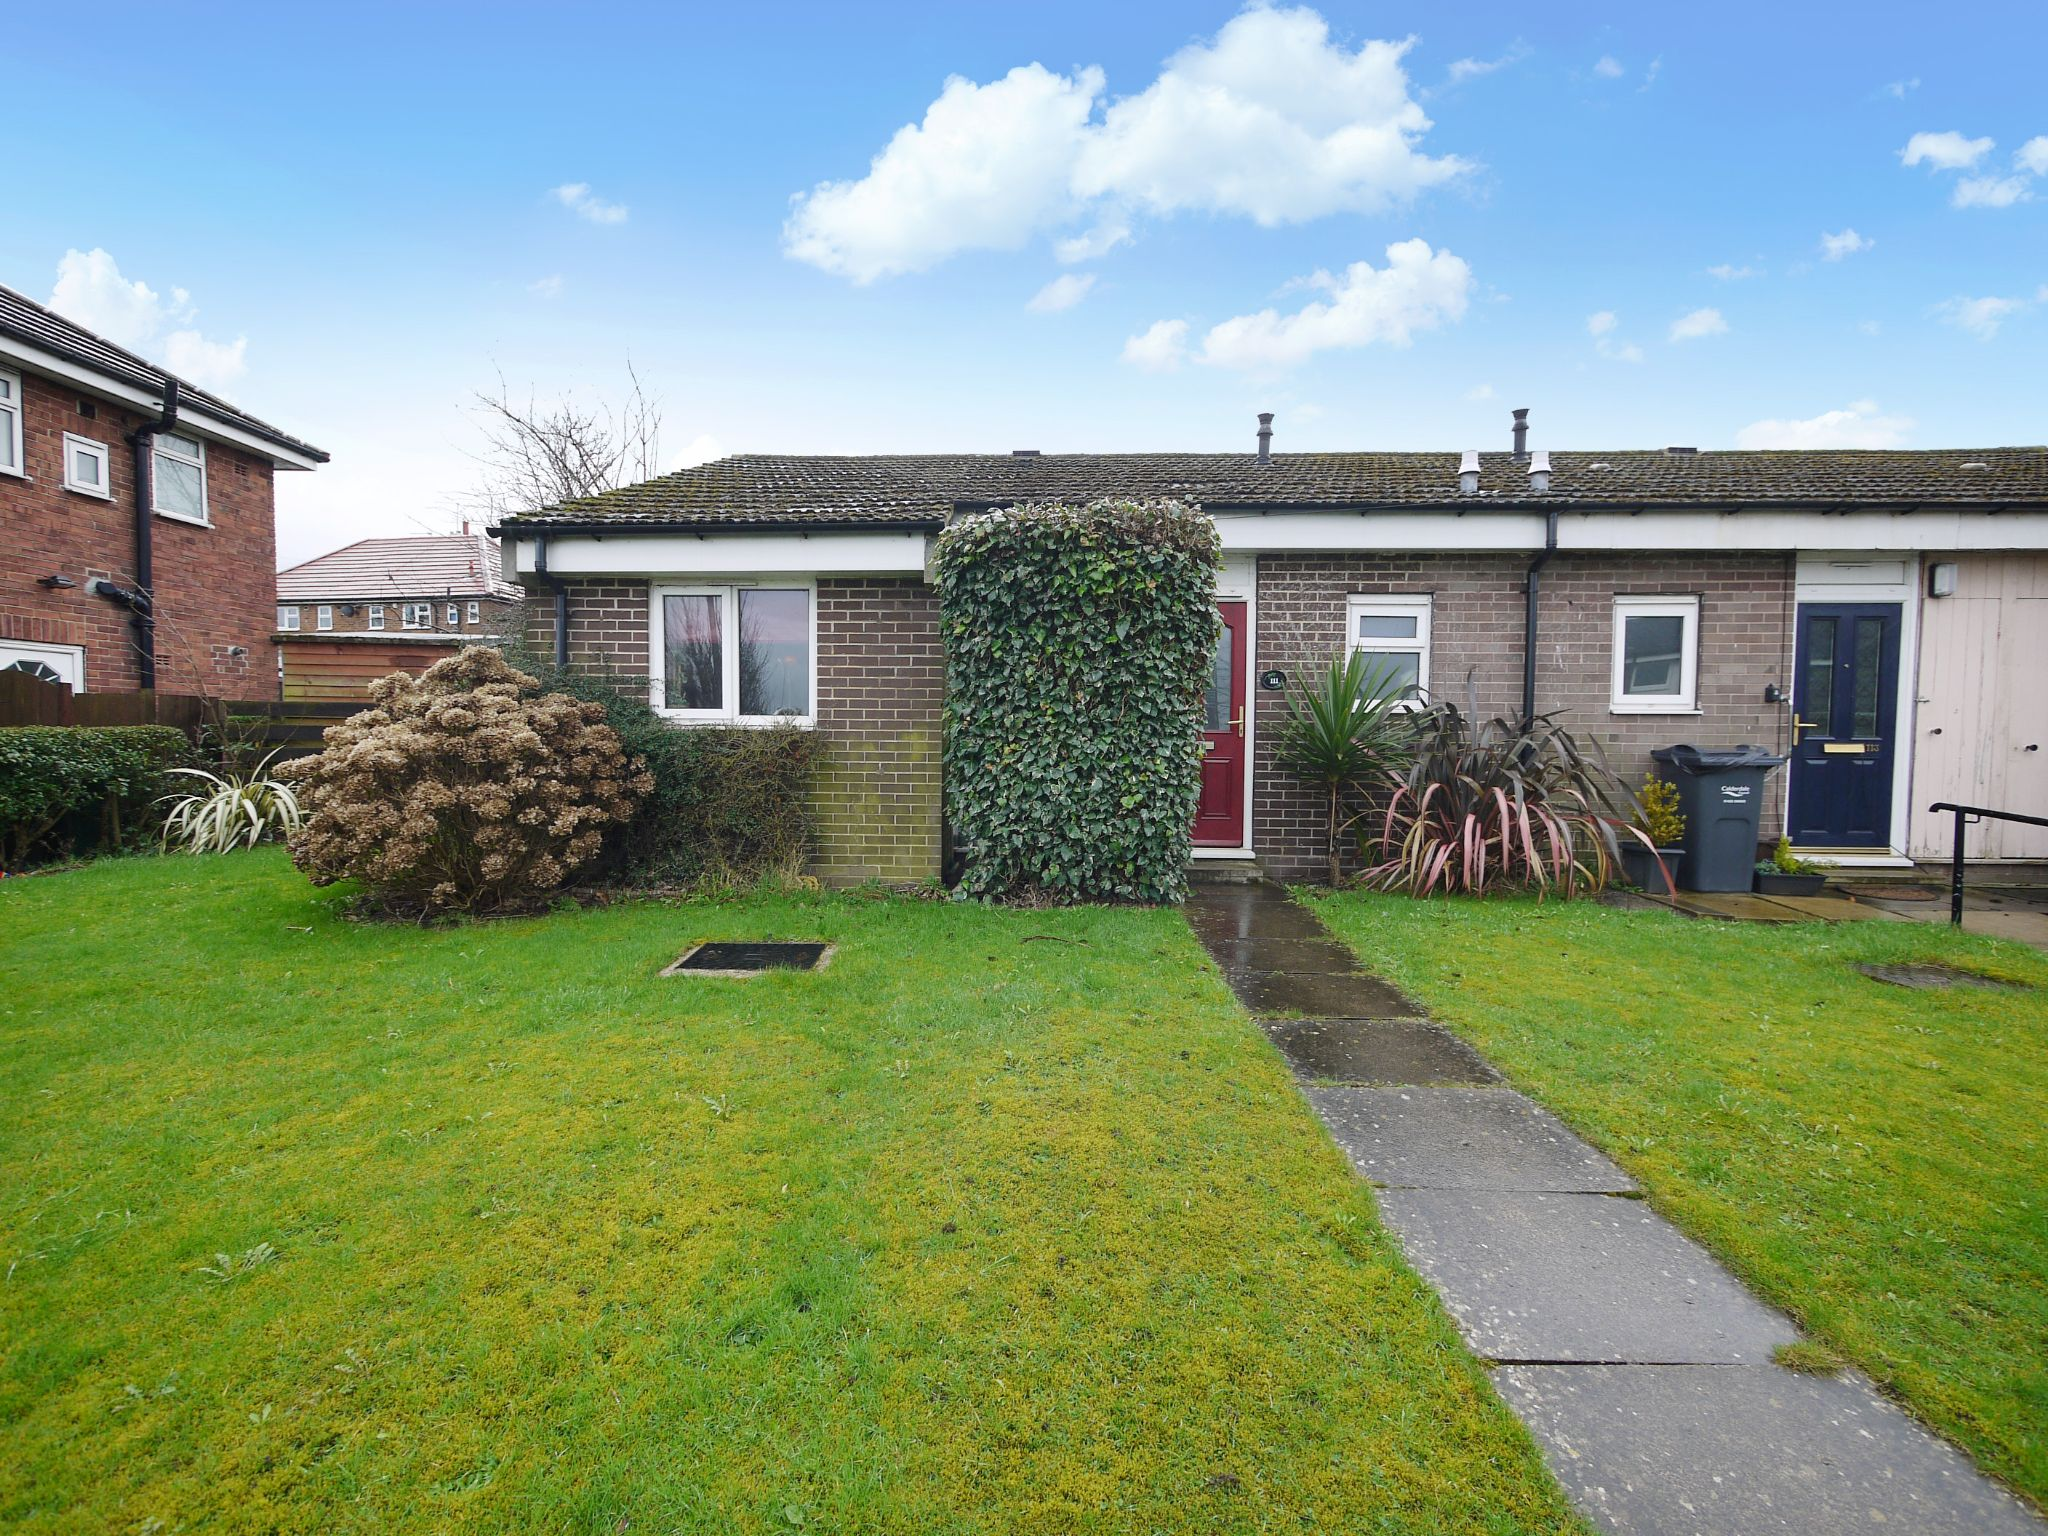 1 bedroom semi-detached bungalow SSTC in Brighouse - Photograph 1.